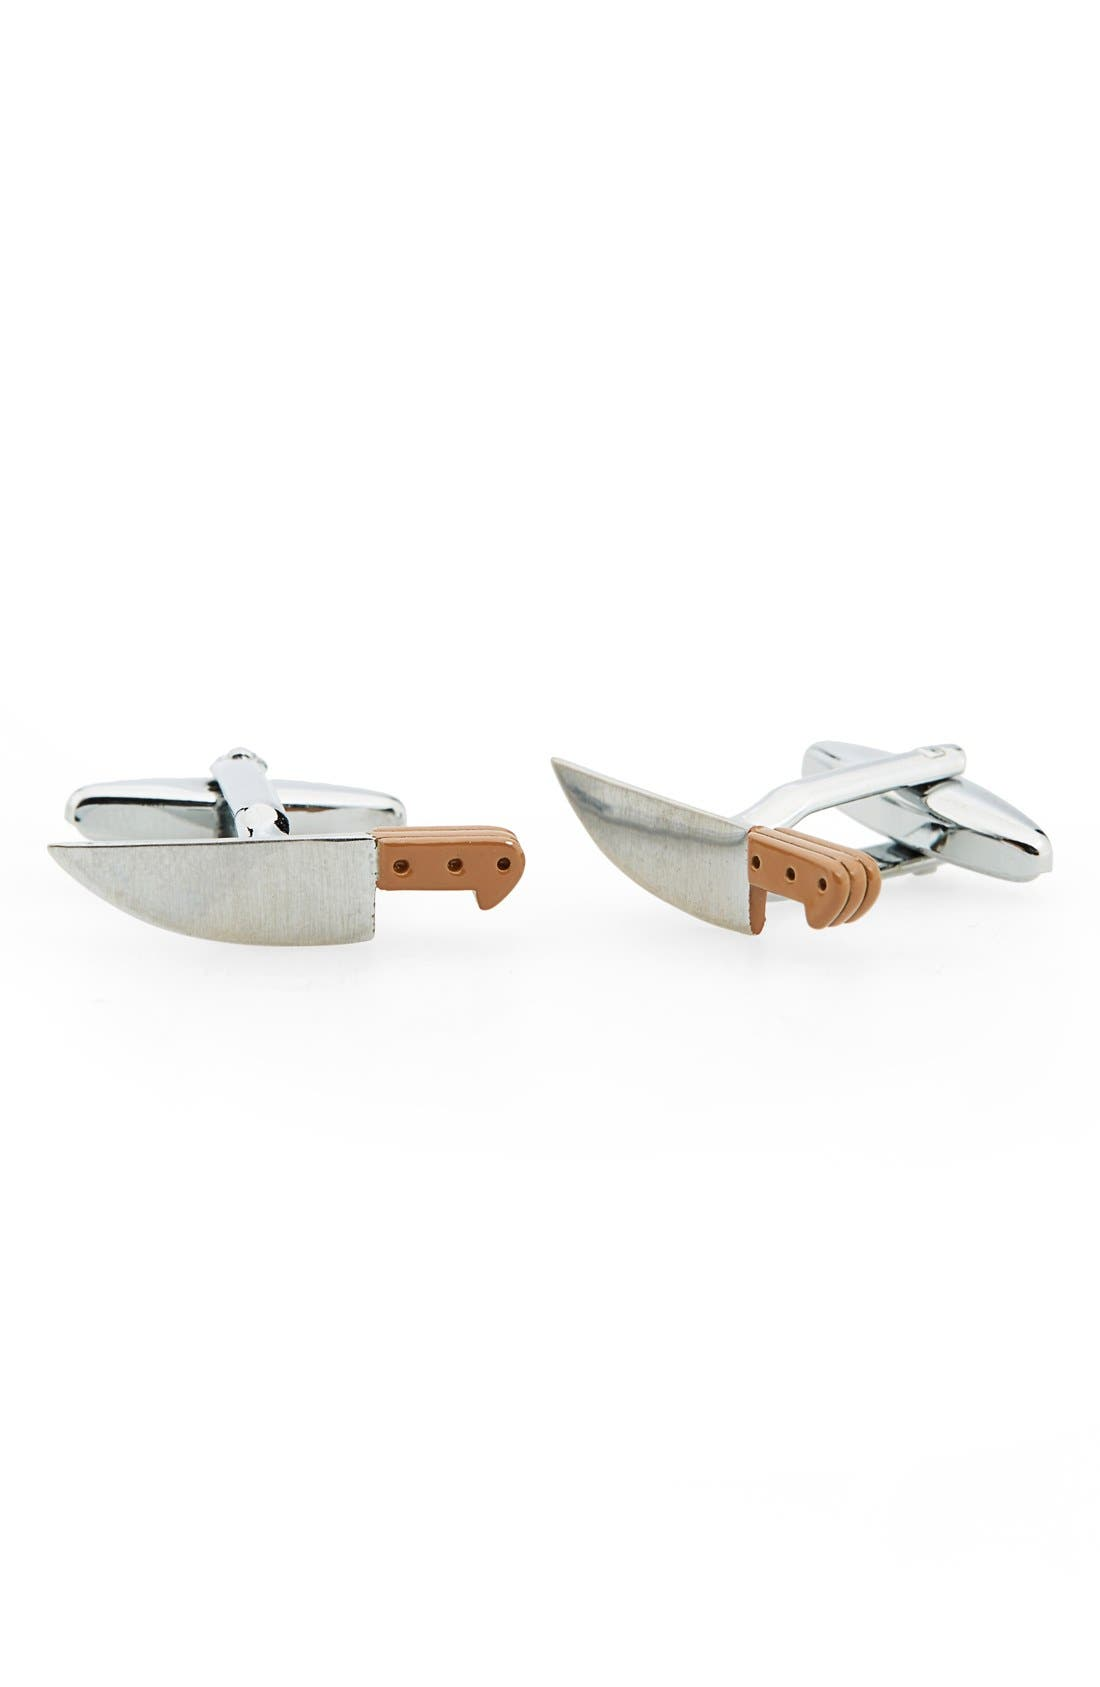 Main Image - LINK UP 'Knife' Cuff Links